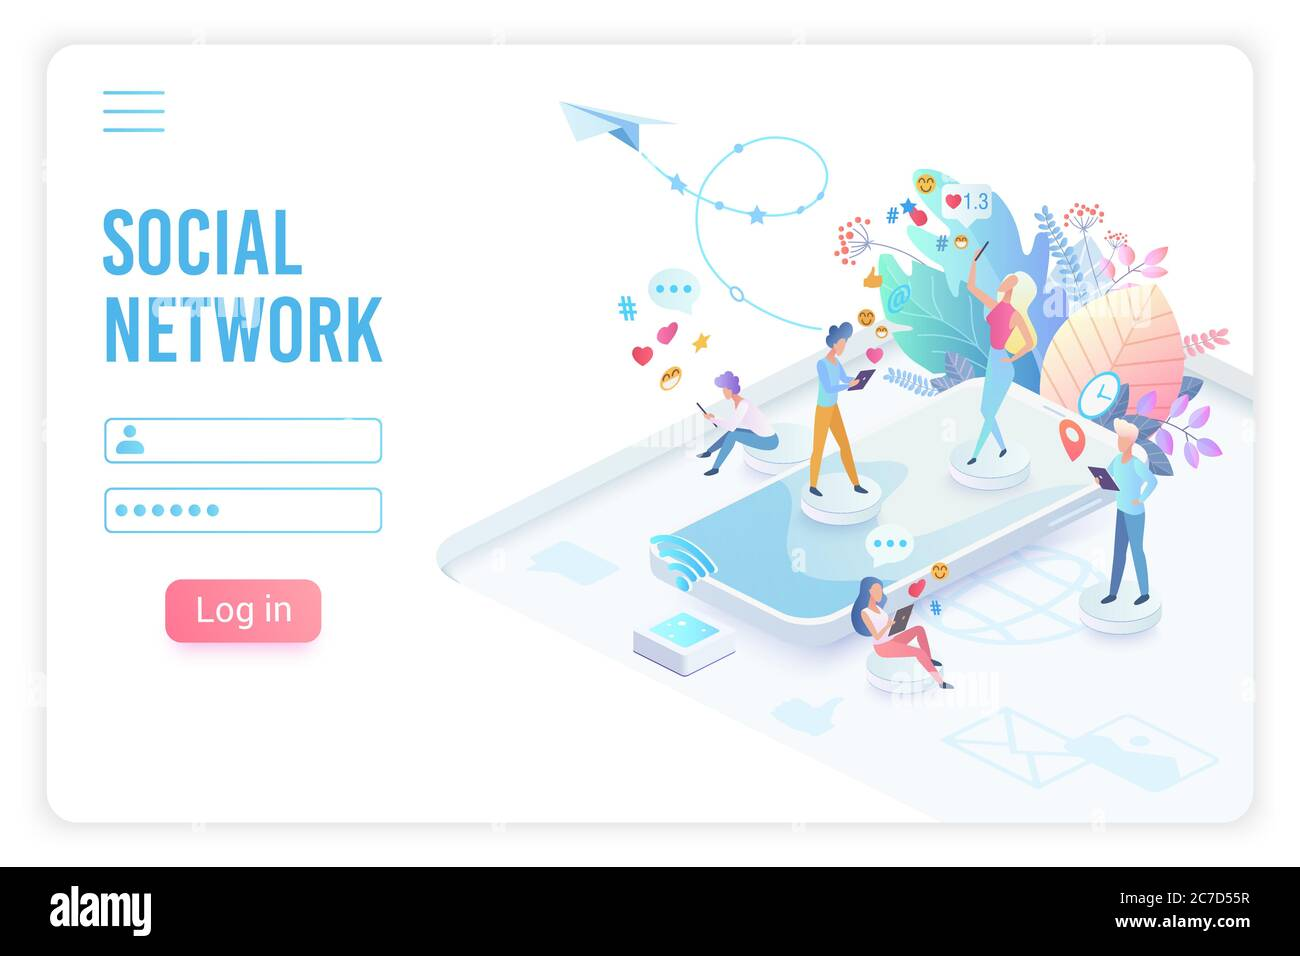 Social network app isometric landing page vector template. Online communication, chatting smartphone application website design layout. Networking, social media service login 3d concept illustration Stock Vector